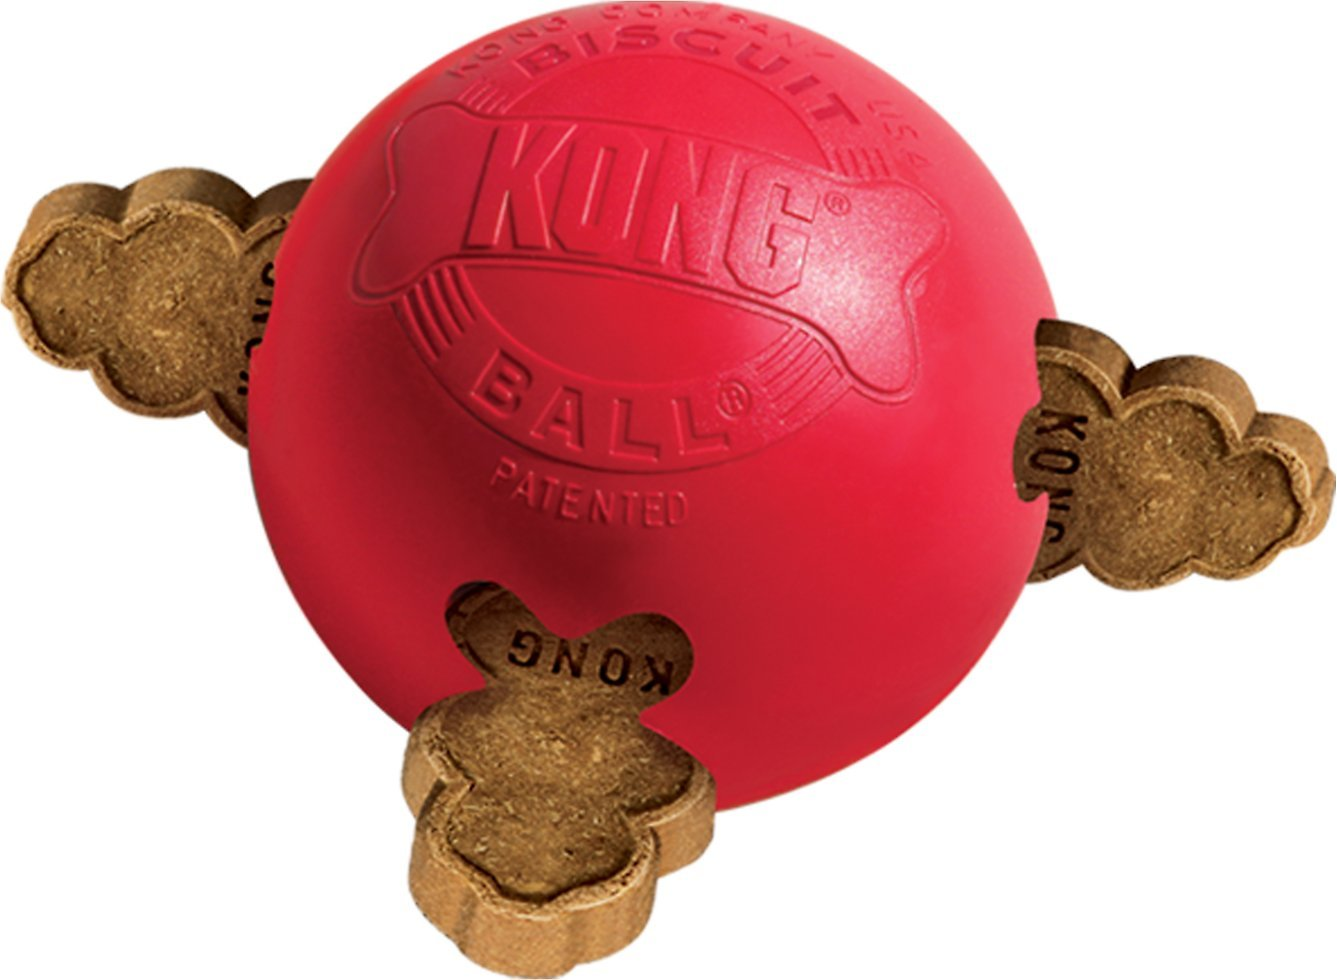 Large Dog Toys Balls : Kong biscuit ball dog toy large chewy